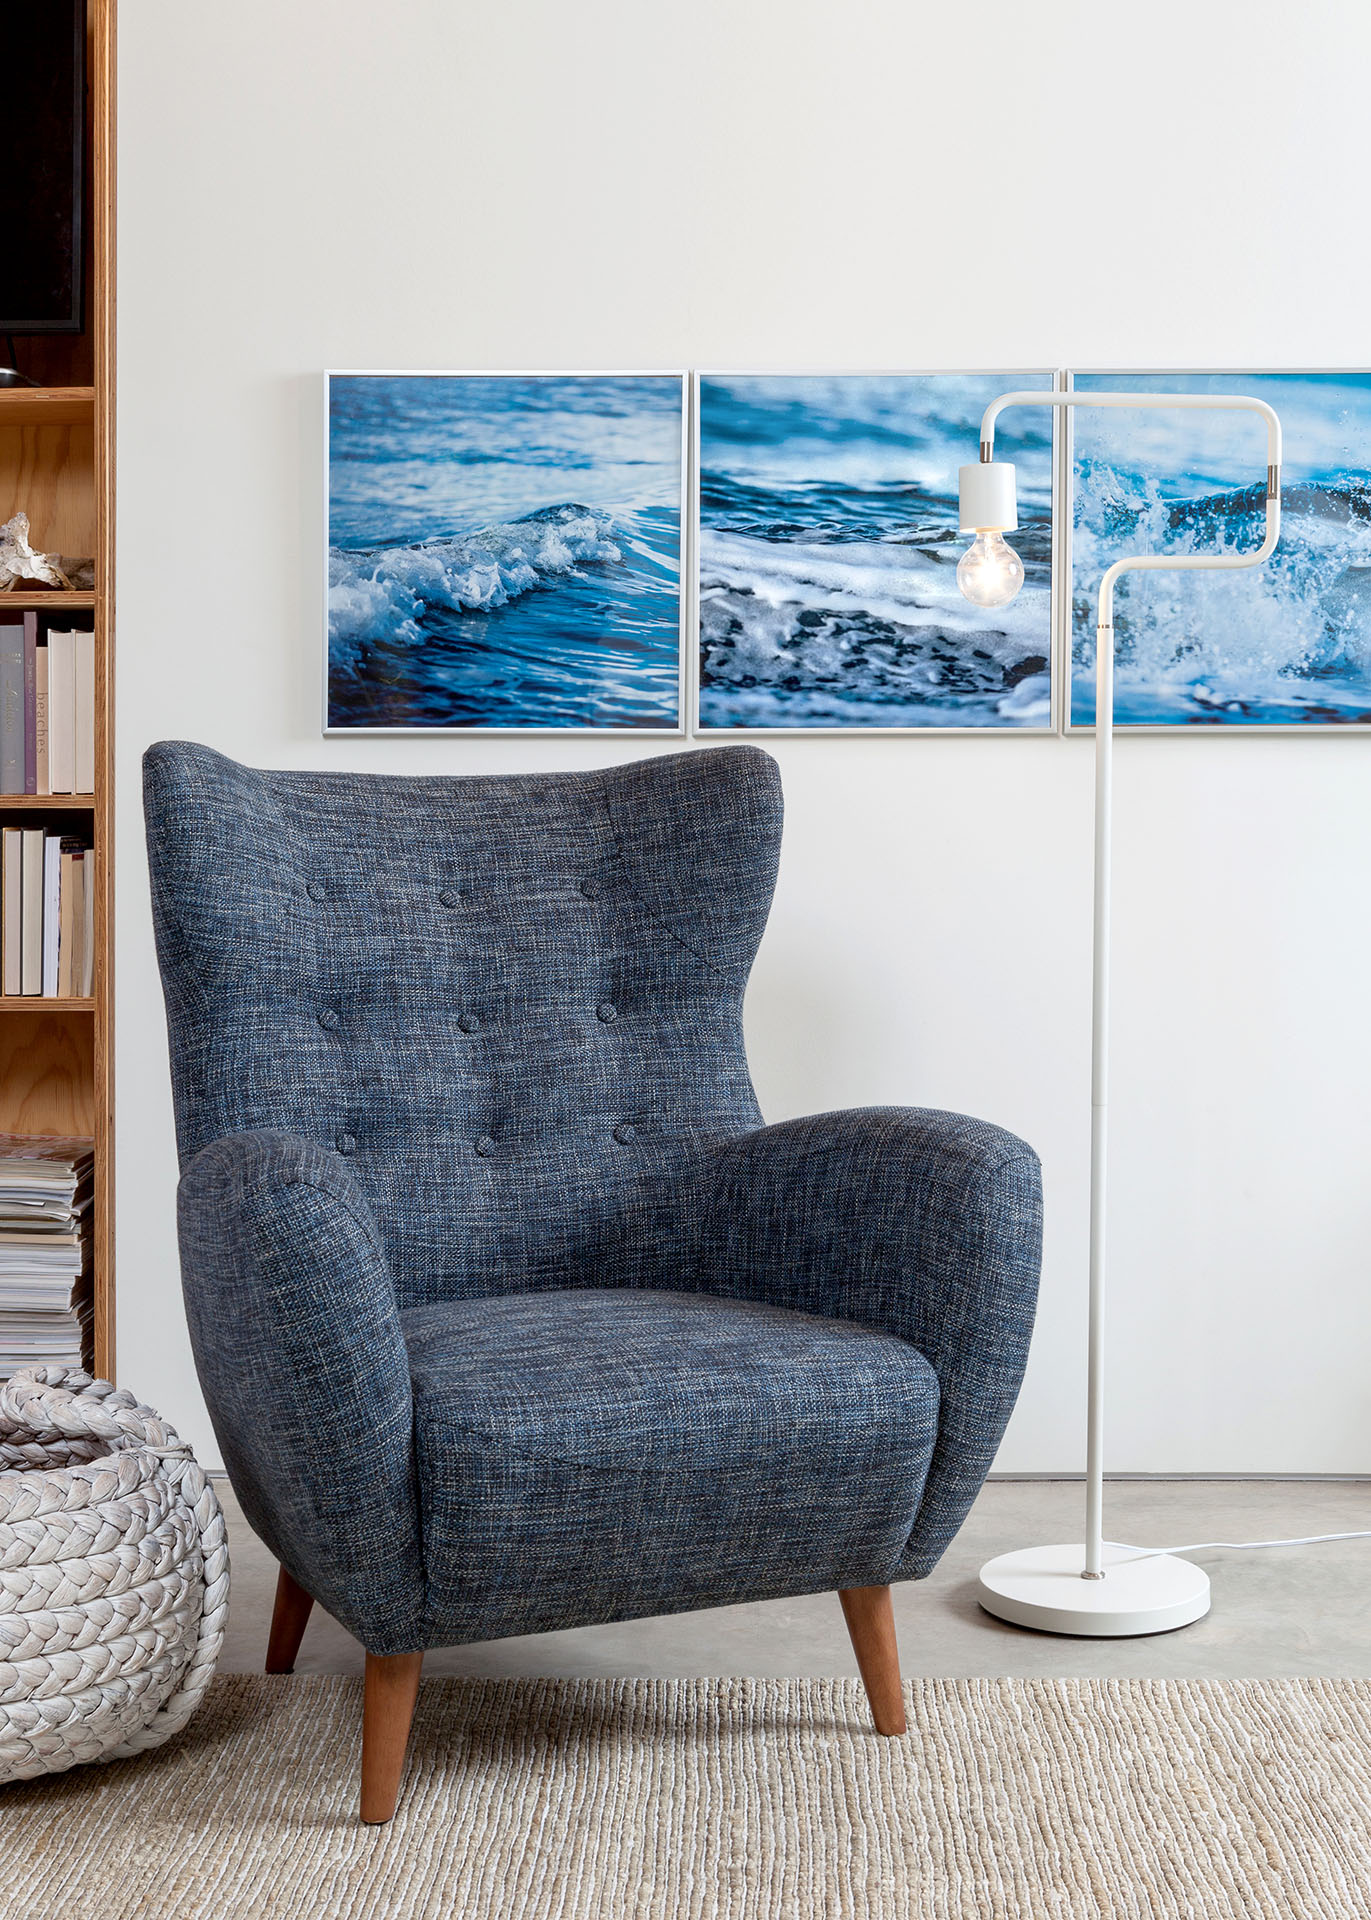 Create An Inspired And Intimate Seating Area By Mixing A Retro Armchair Like Mod With Lighting Choice Serpent Other Articles